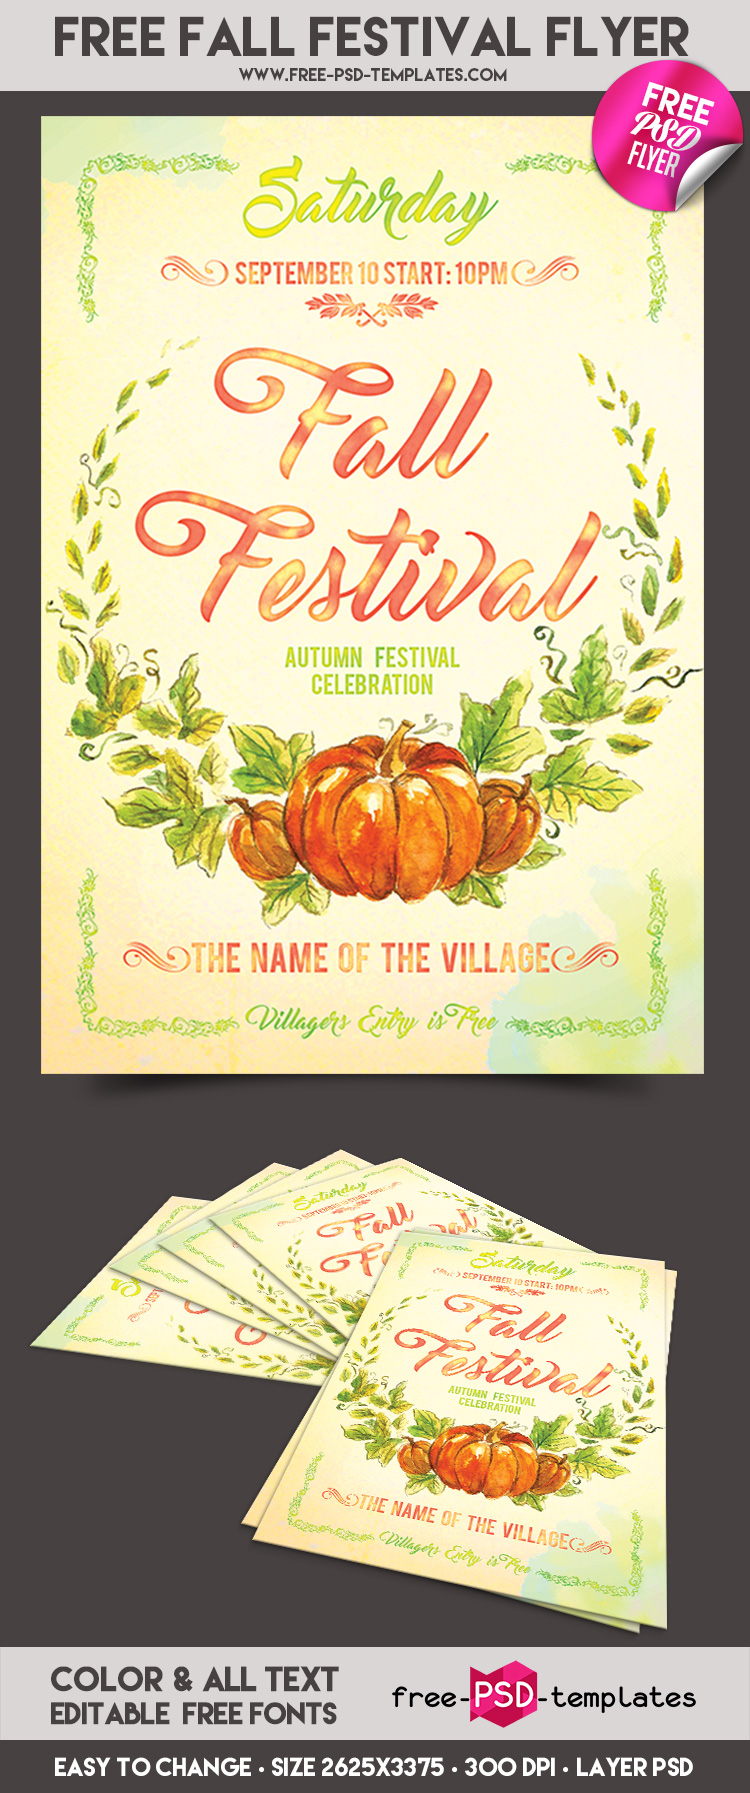 free fall festival flyer in psd free psd templates. Black Bedroom Furniture Sets. Home Design Ideas